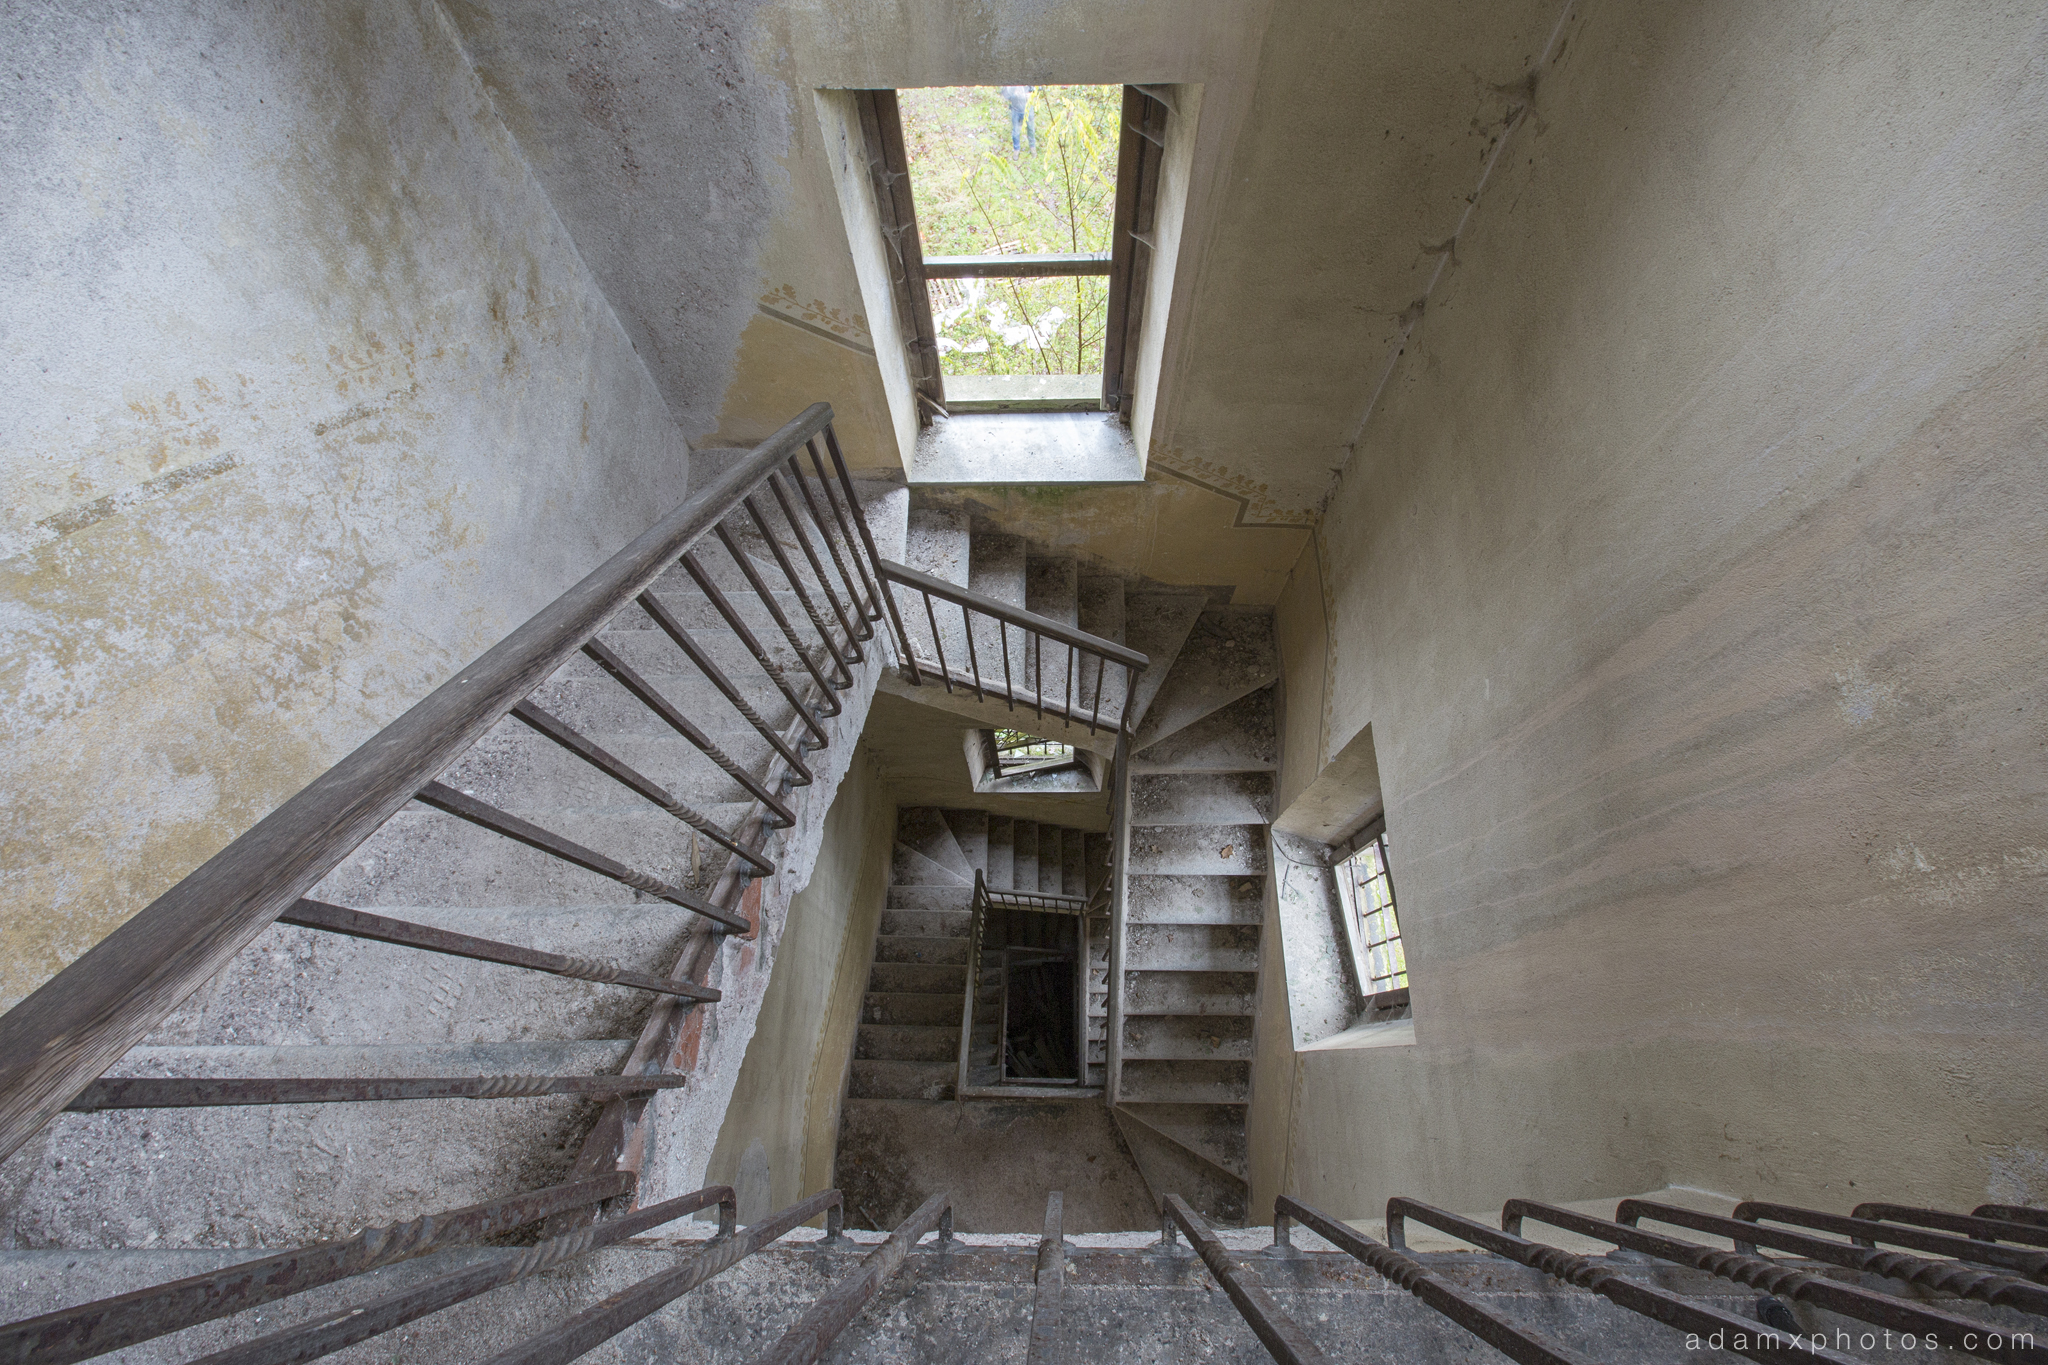 Castello di R Italy castle Urbex Adam X Urban Exploration spiral staircase looking down stairs photo photos report decay detail UE abandoned derelict unused empty disused decay decayed decaying grimy grime